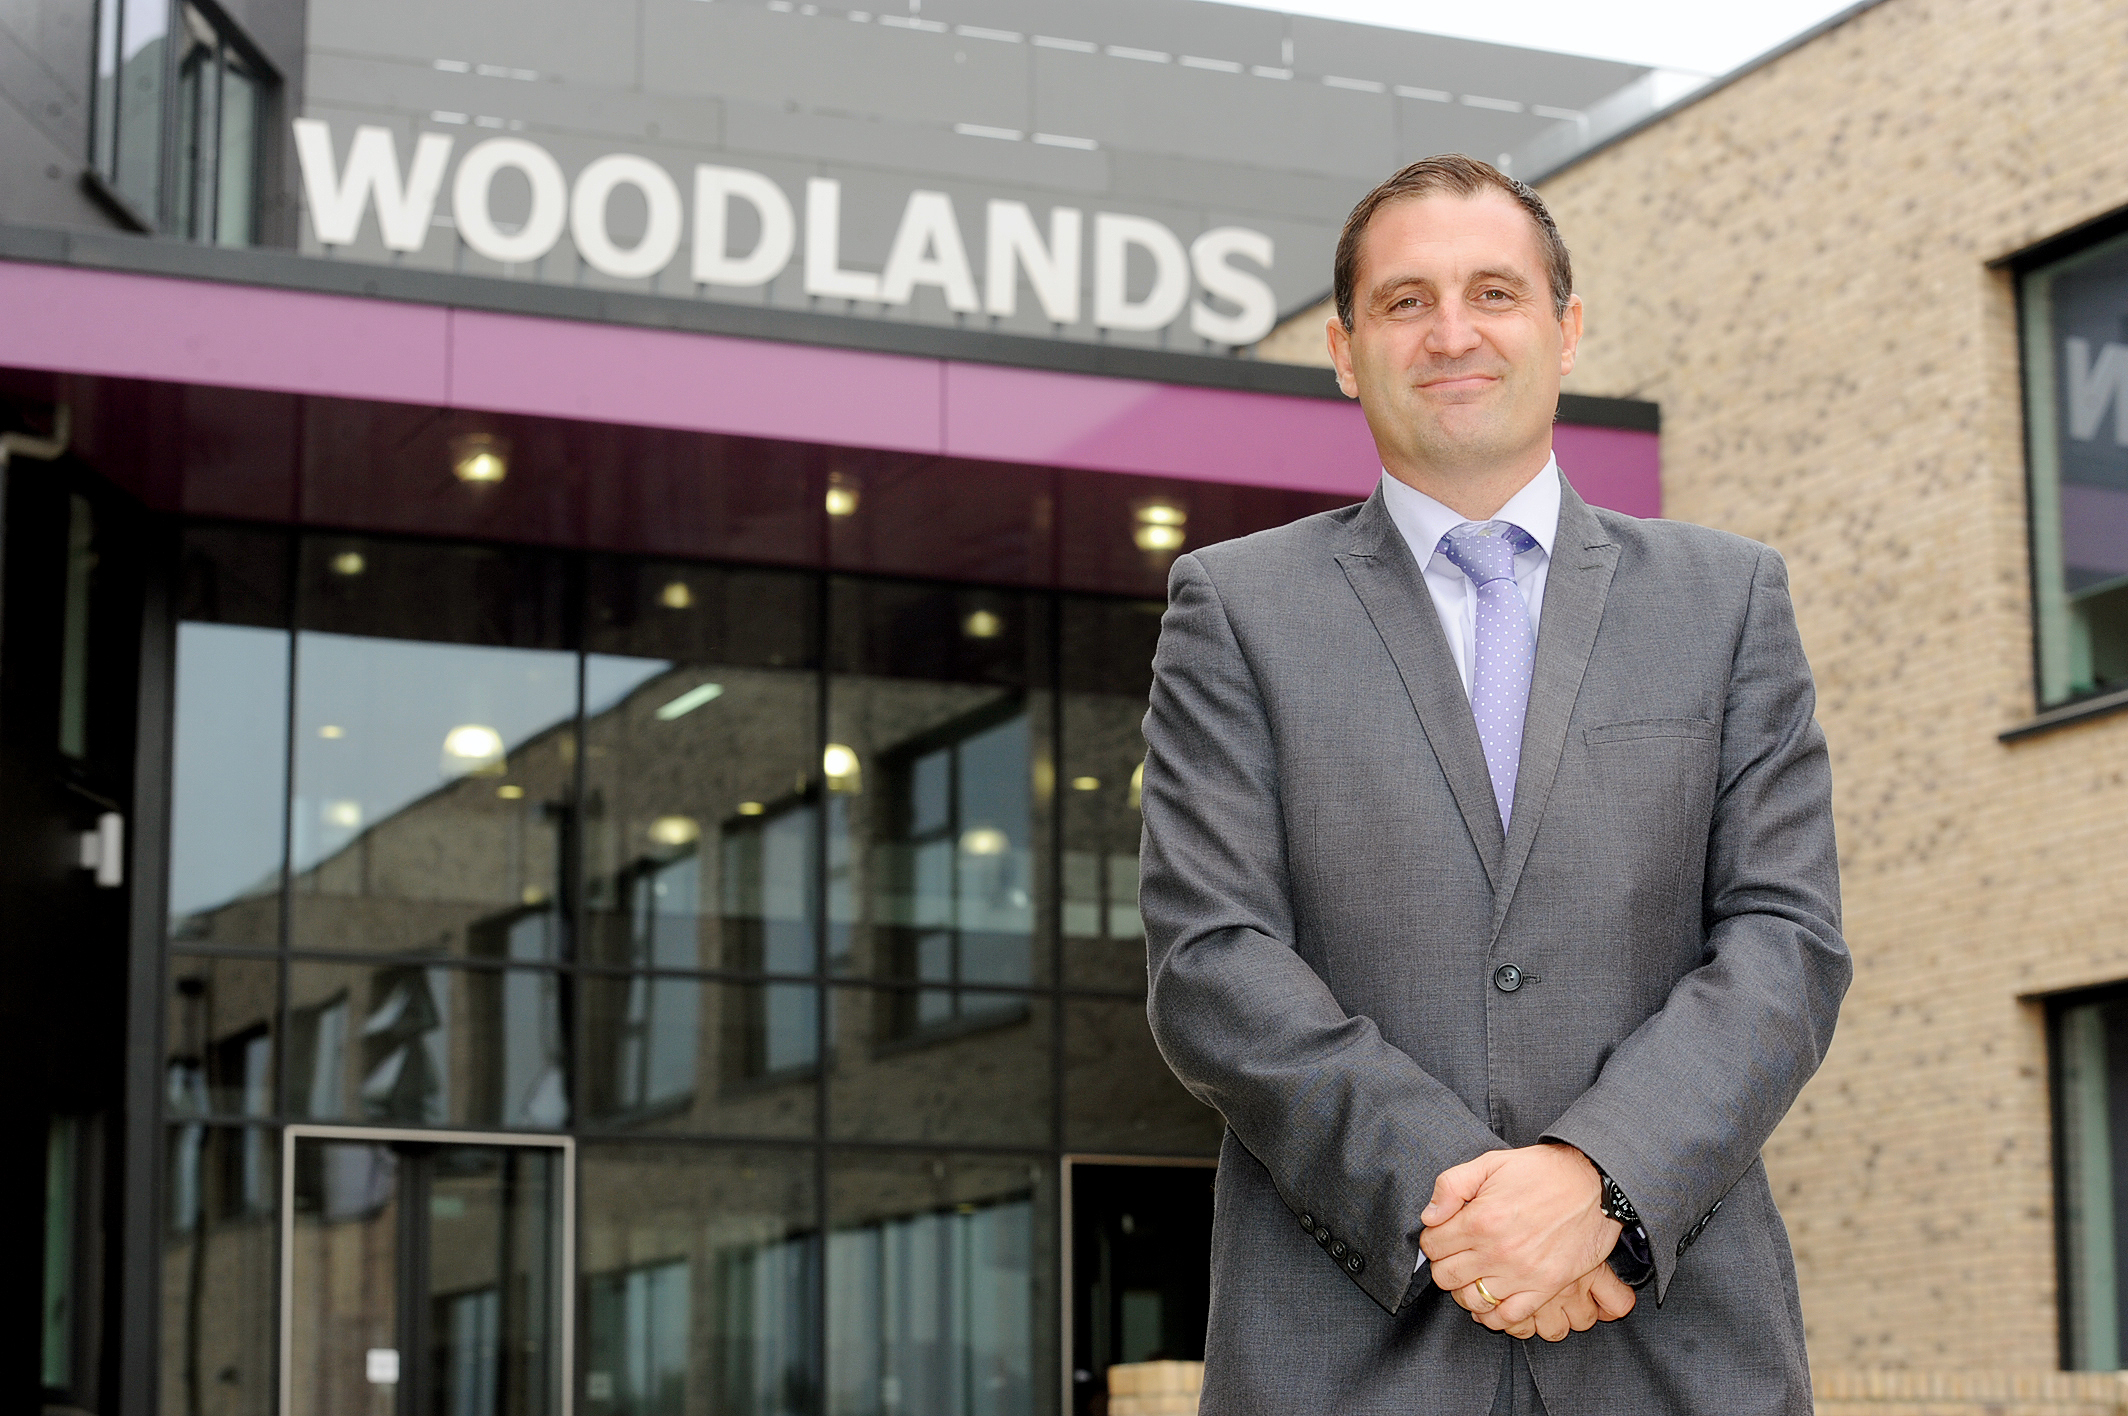 Headteacher Simon CoxWoodlands School, Woodlands Approach, Basildon.Job Details Interview with new headteacher Simon Cox about Ofsted report. MP Stephen Metcalfe will be there. Pictures: AL UNDERWOOD.Date   11/ 9 /14 Copyright Echo/ Newsquest 01268 4